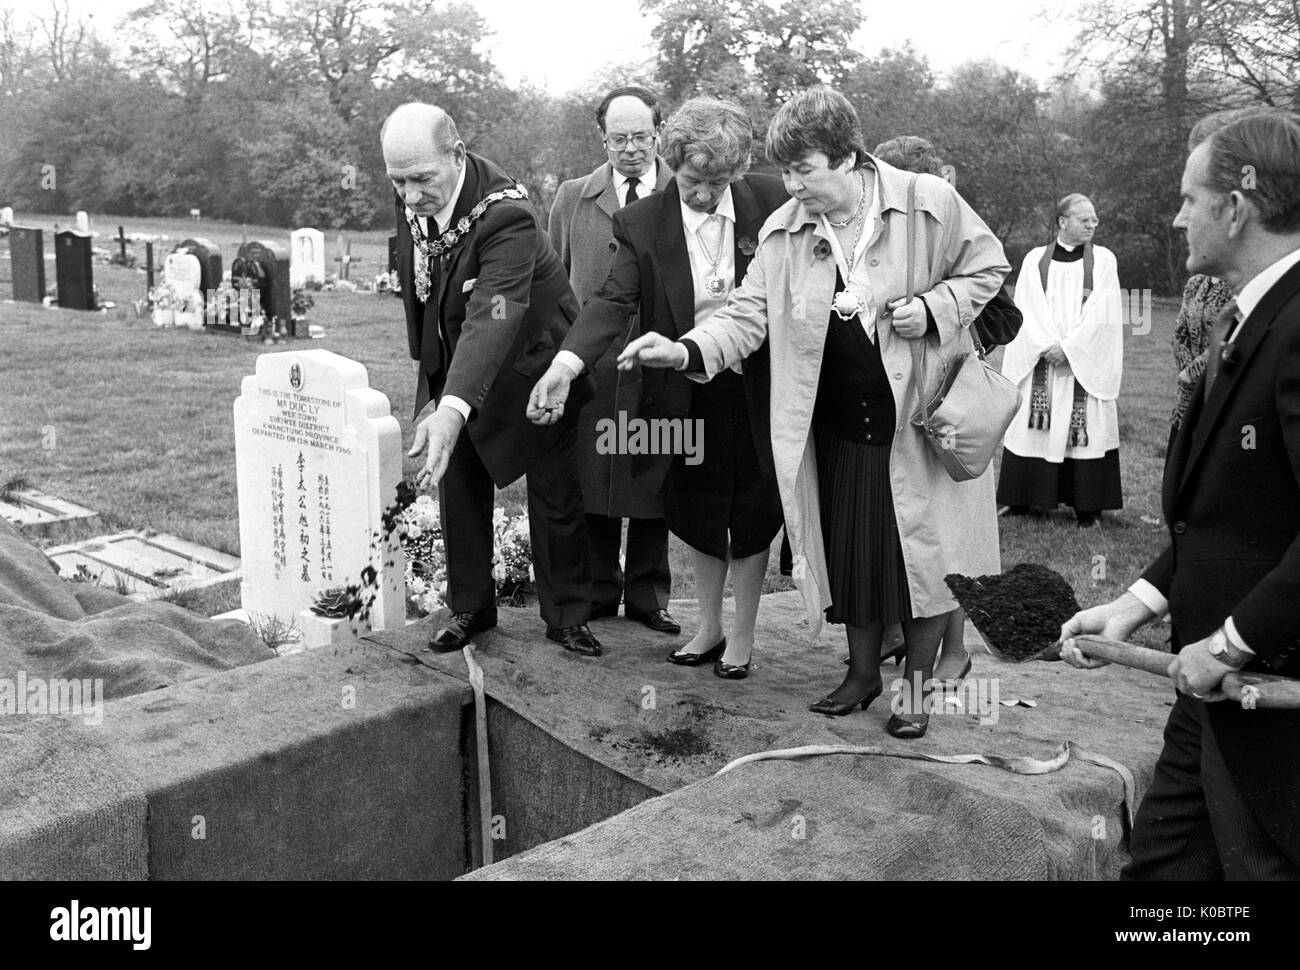 (L-R) Bill Budd, the Mayor of Camden, Gerald Isaaman, Chairman of the King's Cross Disaster Fund, the Mayor's wife Iris Budd, and the former Mayor's wife Eileen Williams at the graveside in St Pancras Cemetery, London, where two unknown victims of the King's Cross Underground Station fire were buried. - Stock Image